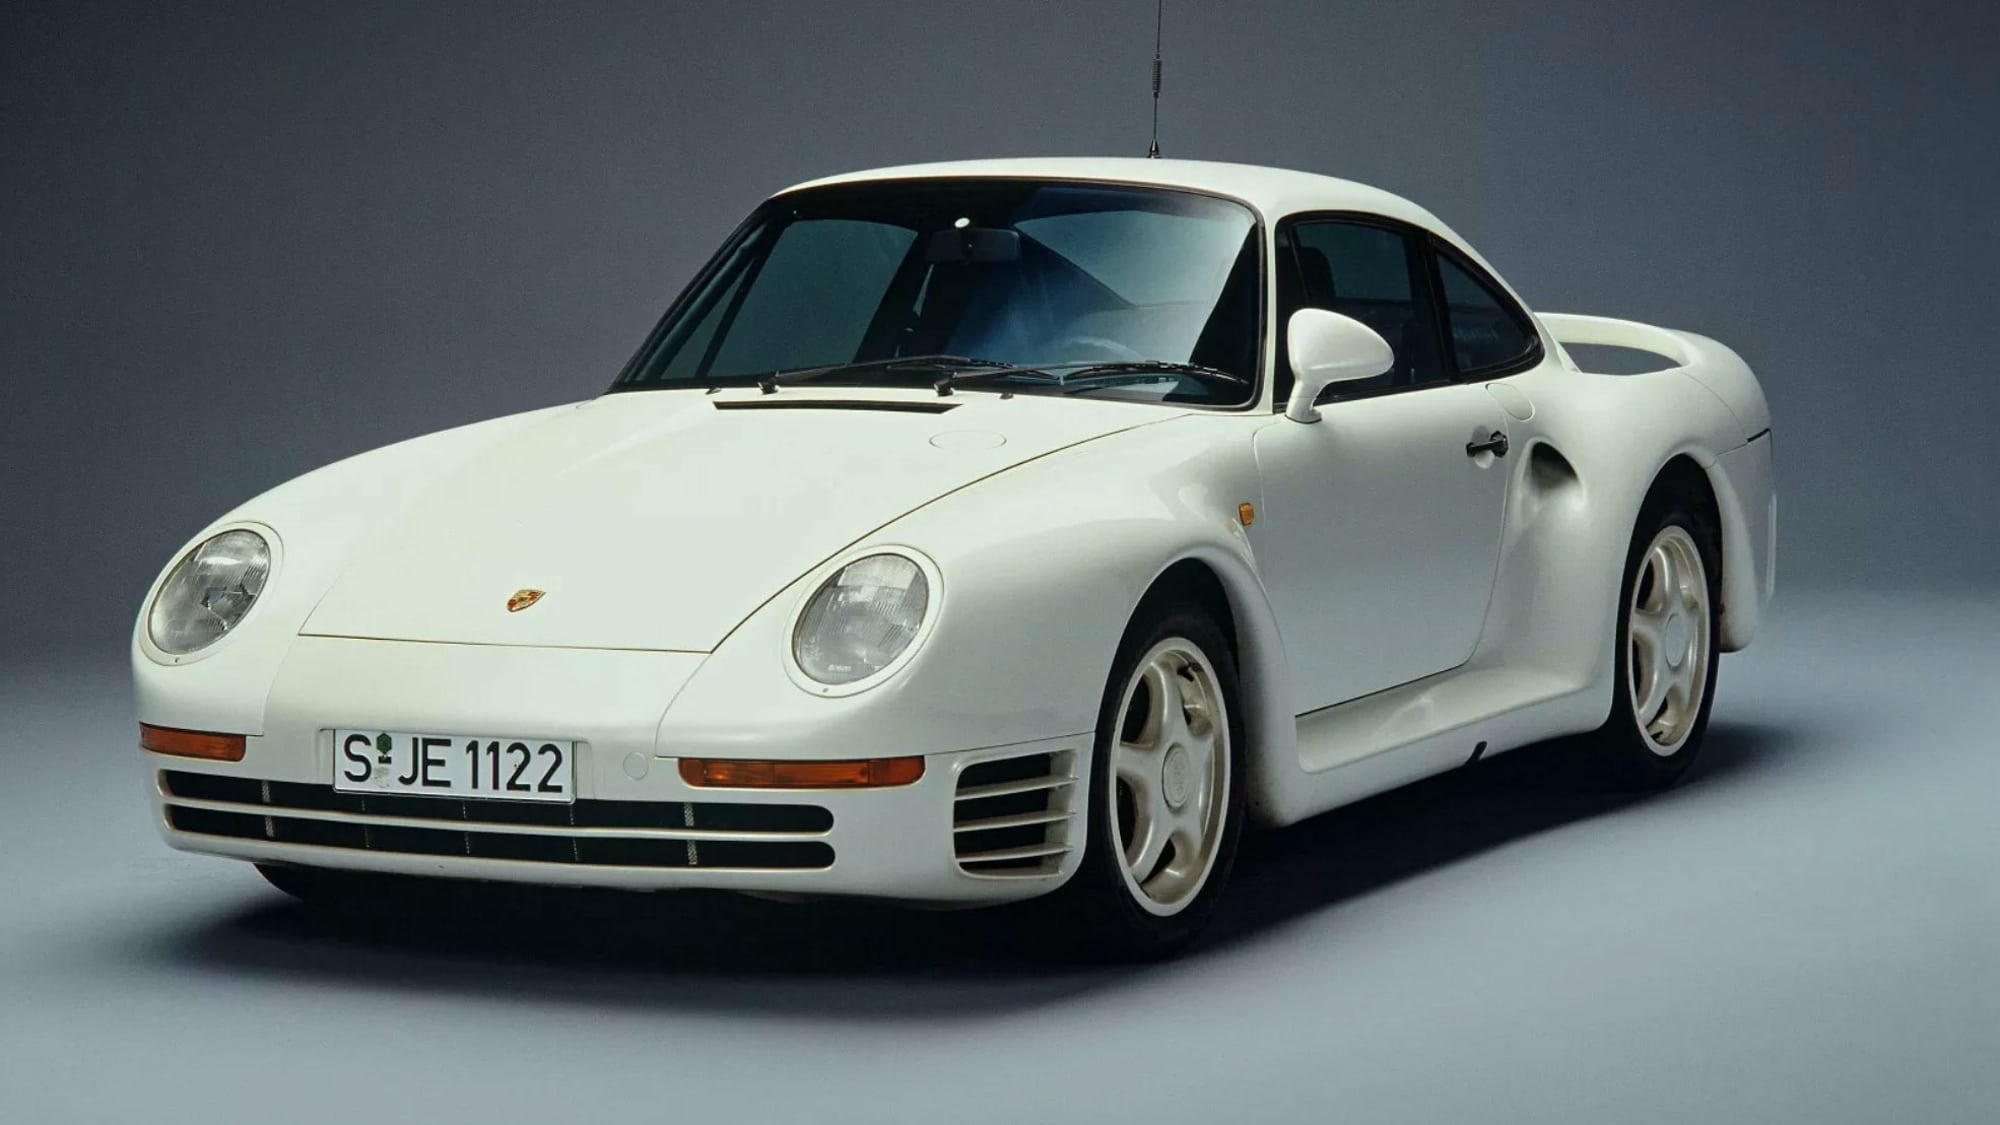 Weekend Round-Up: Views Of The Earth, New York City In The 1980s, And The Crazy Story Of The Porsche 959 p2